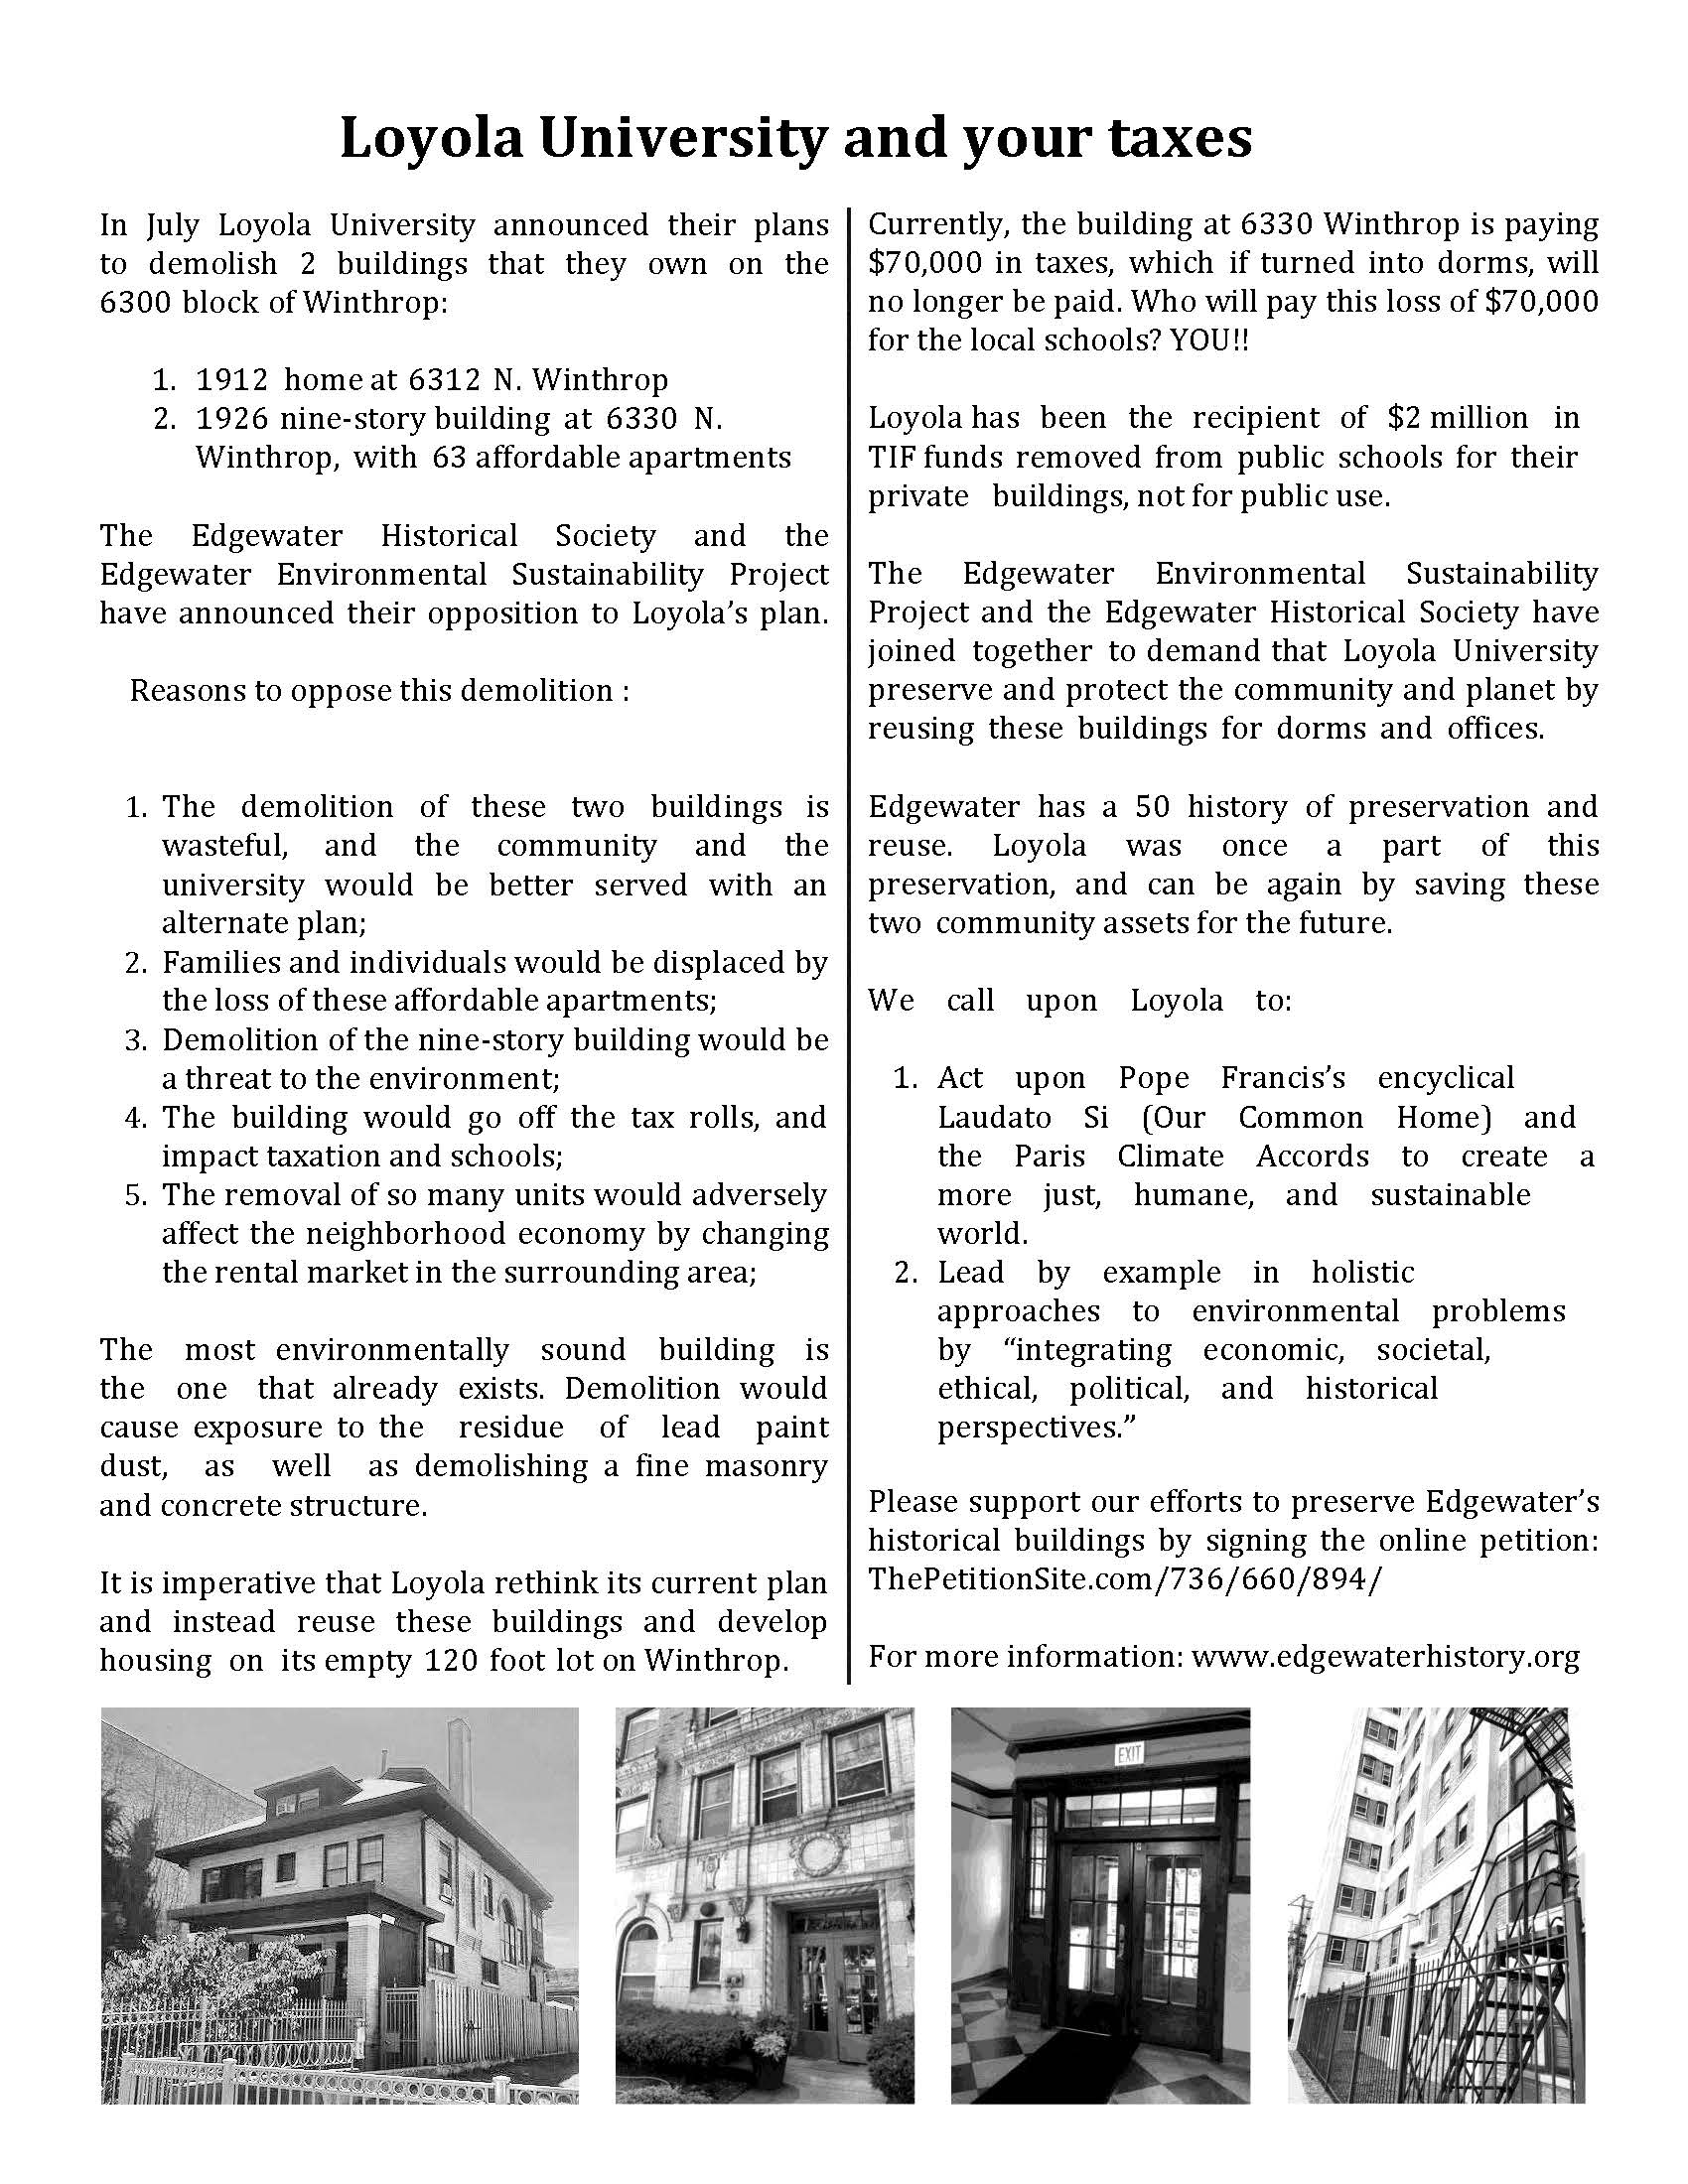 petition flyer2c.jpg